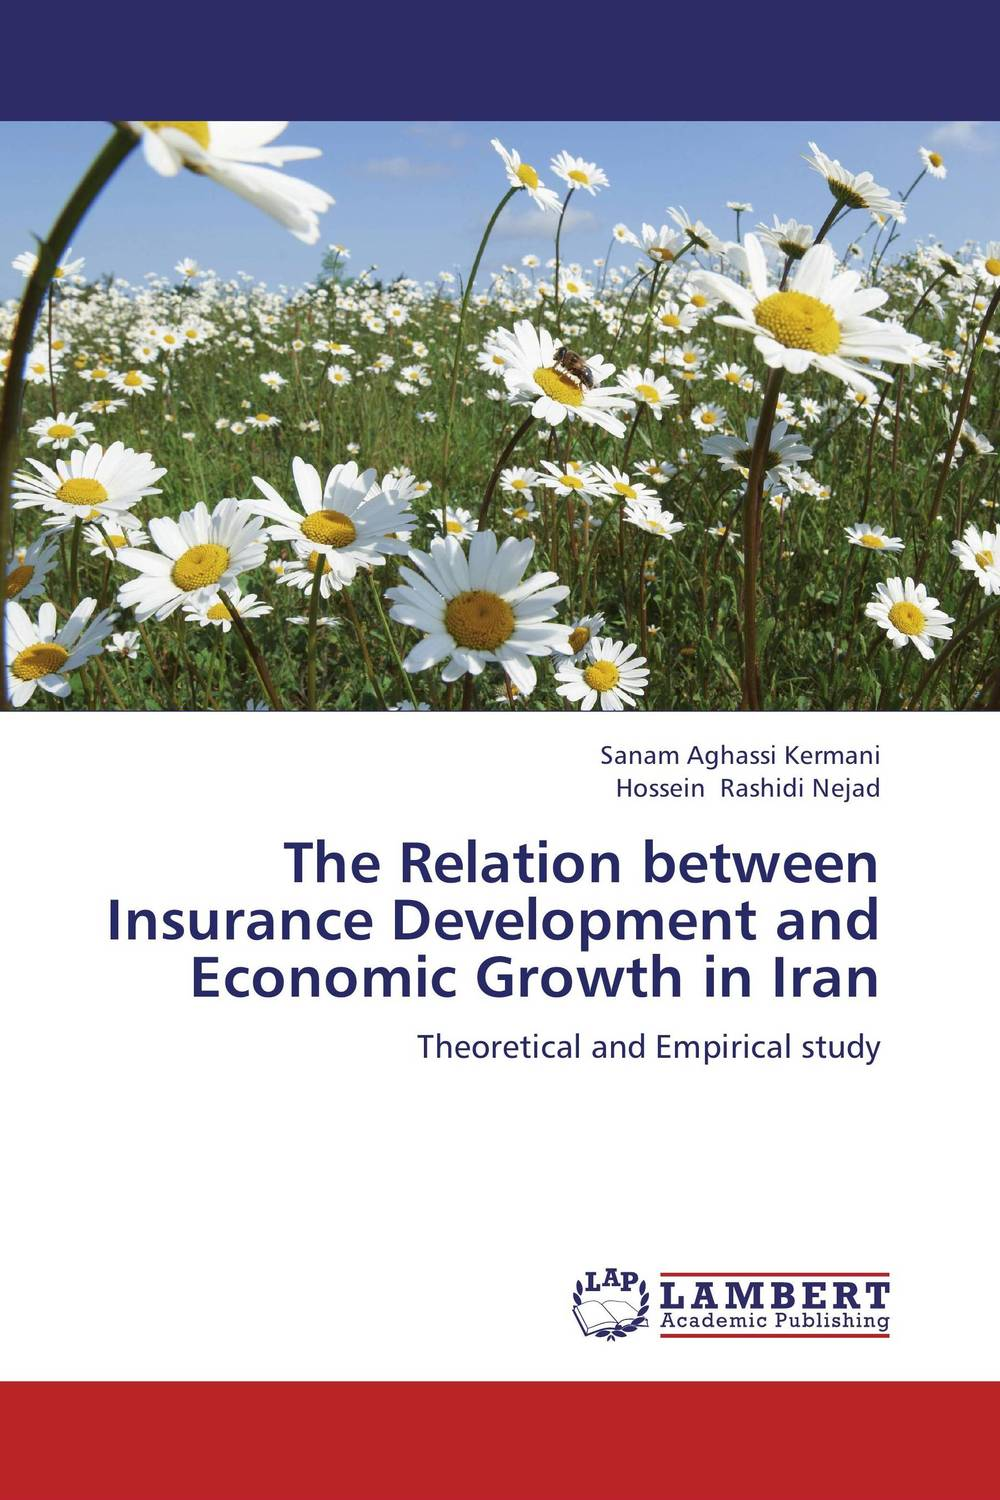 The Relation between Insurance Development and Economic Growth in Iran t omay energy consumption and economic growth evidence from nonlinear panel cointegration and causality tests